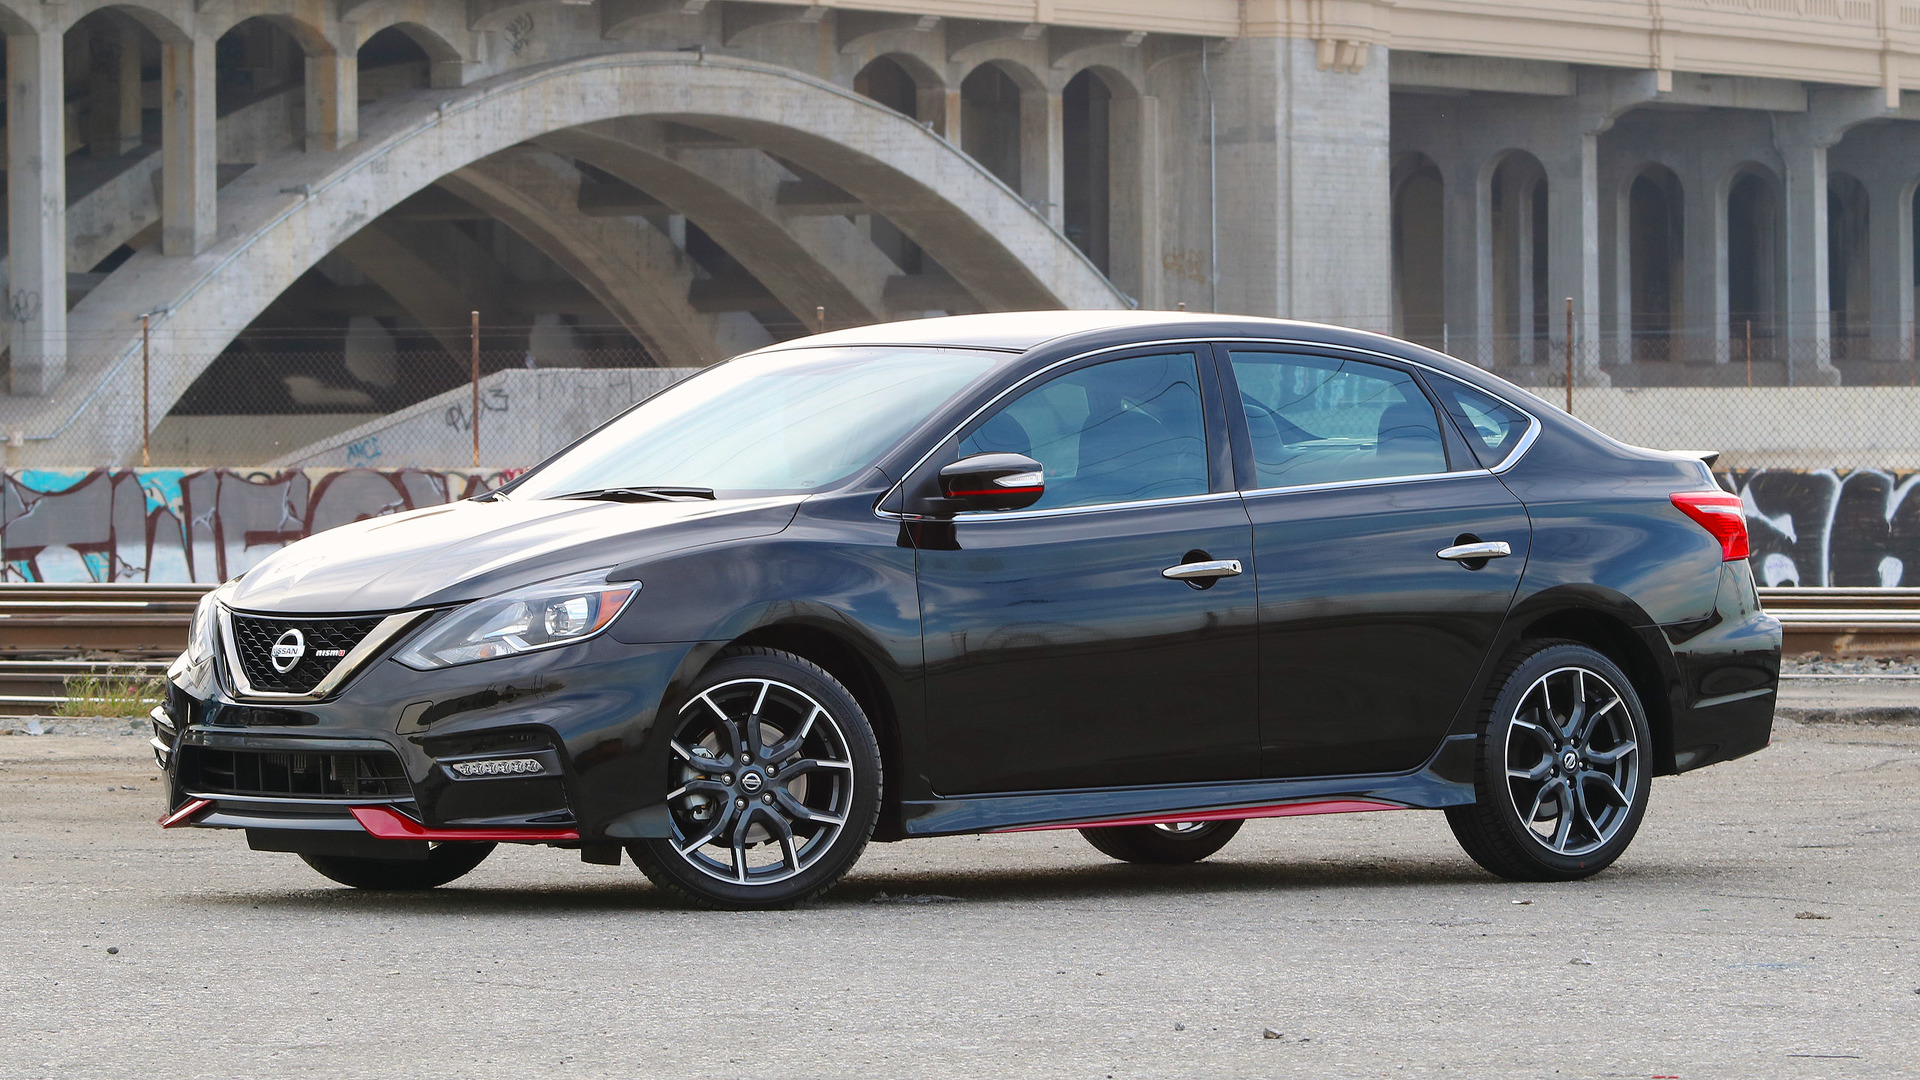 2019 Nissan Sentra >> 2017 Nissan Sentra Nismo First Drive Reviews Car And | Autos Post